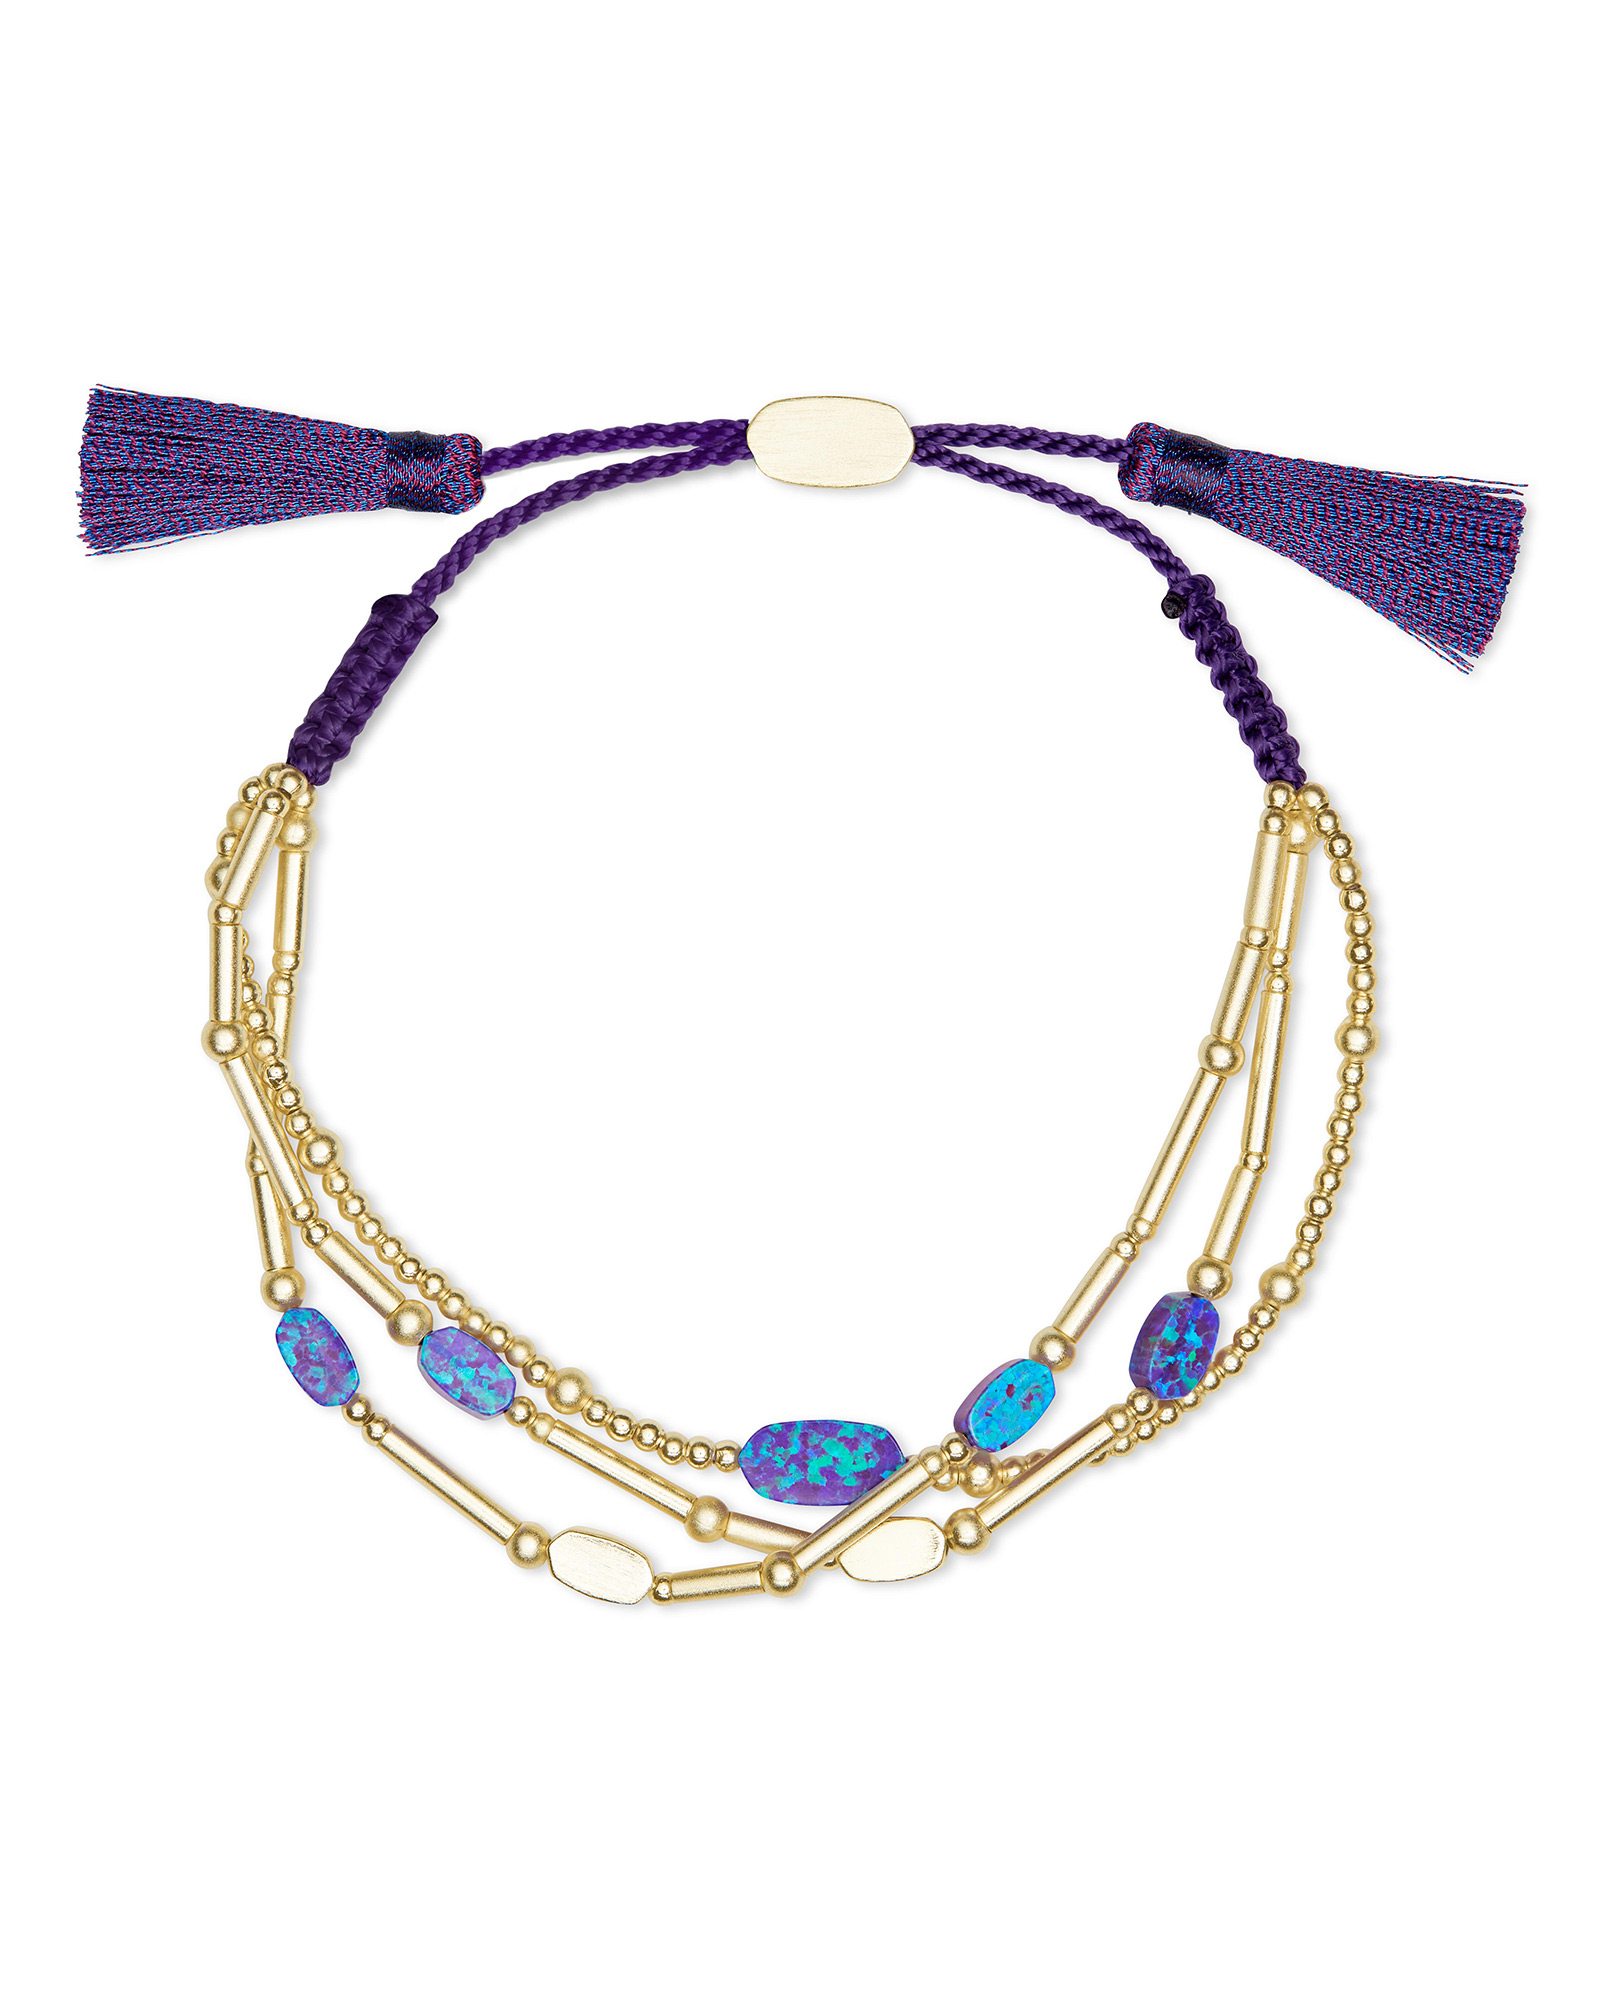 Chantal Gold Beaded Bracelet in Violet Kyocera Opal